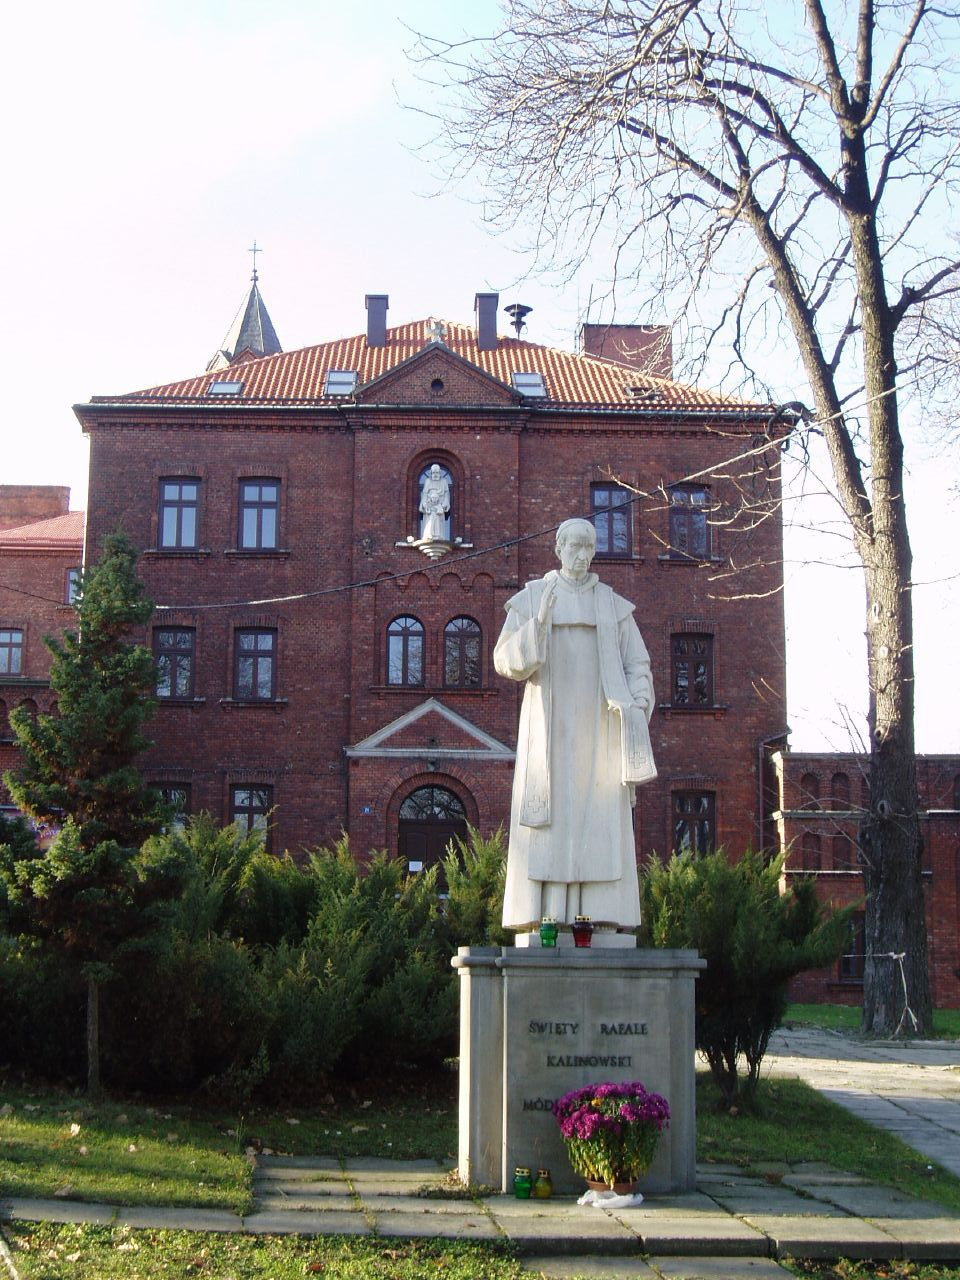 St Joseph Convent of the Discalced Carmelite Friars Wadowice